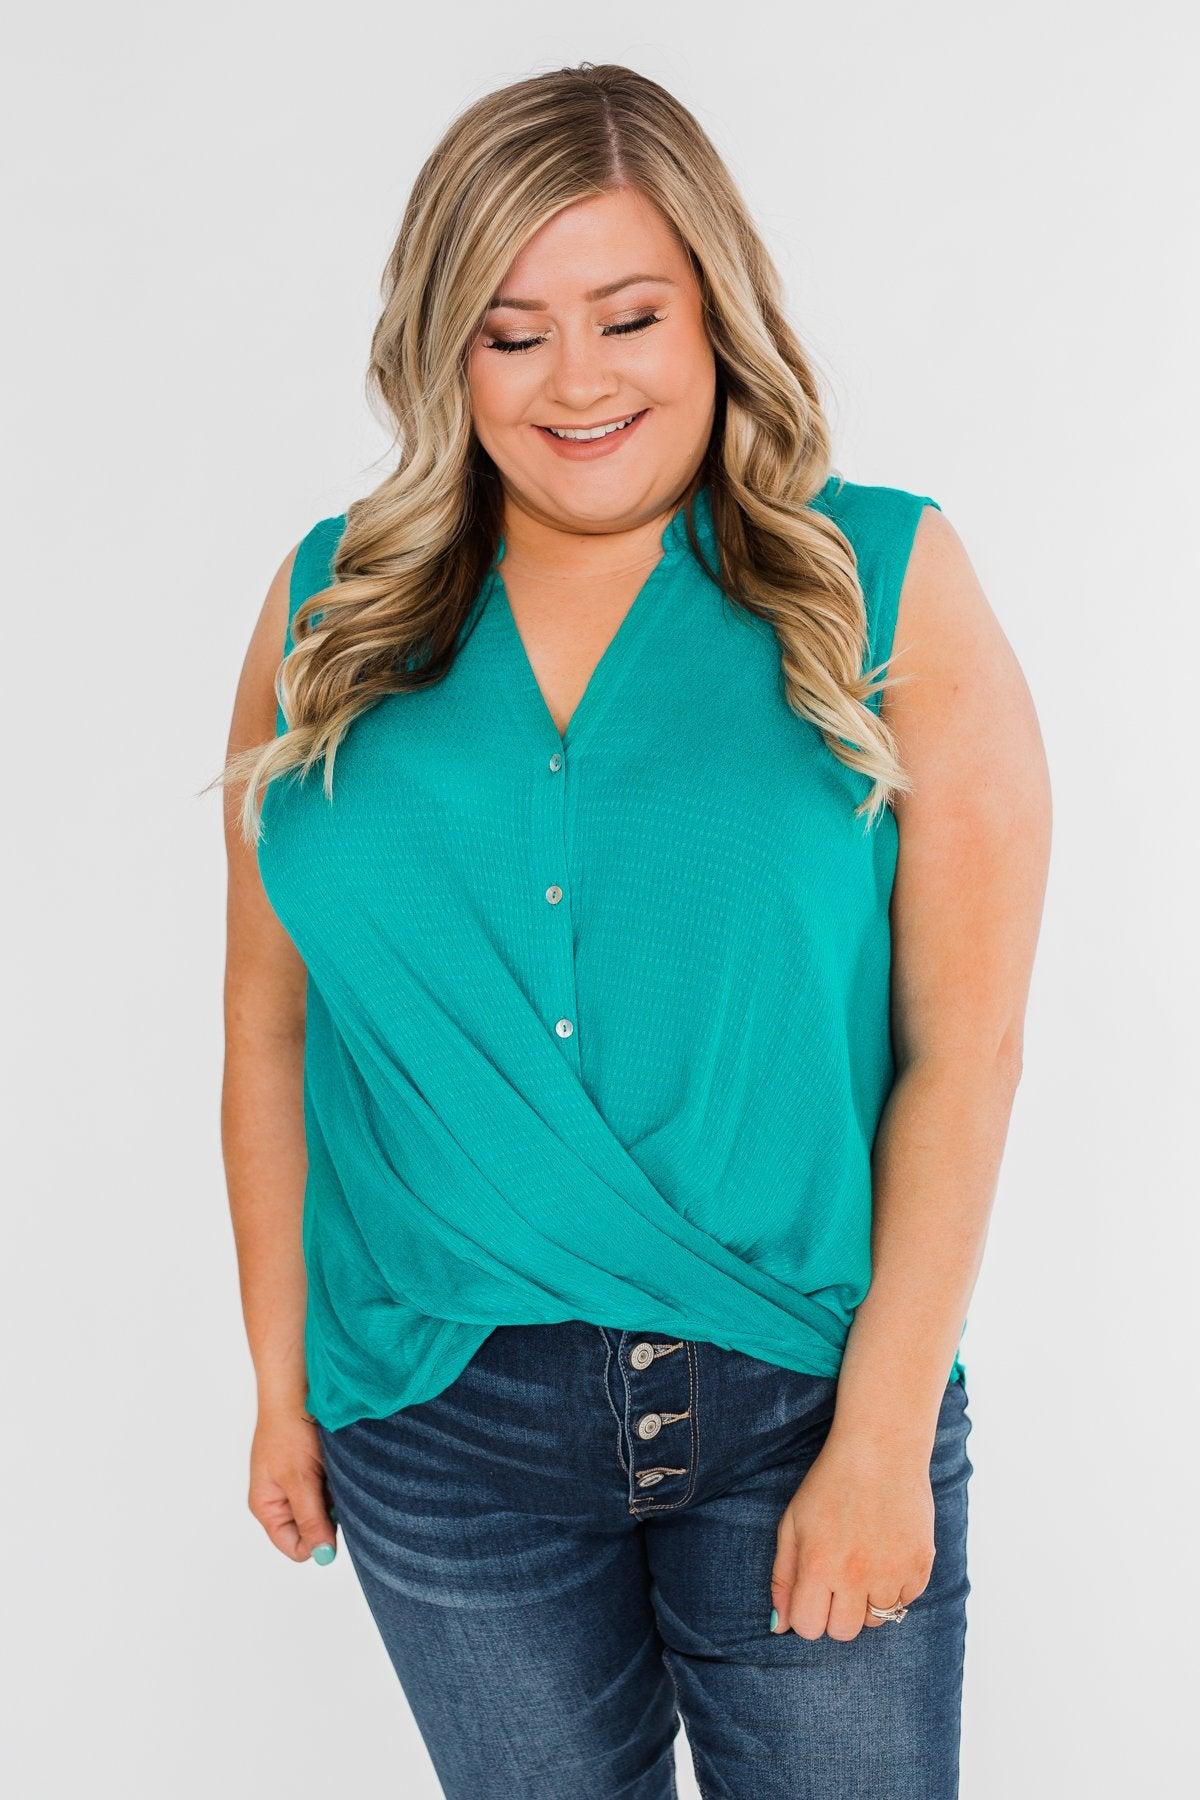 Anywhere With You Twist Tank Top- Turquoise